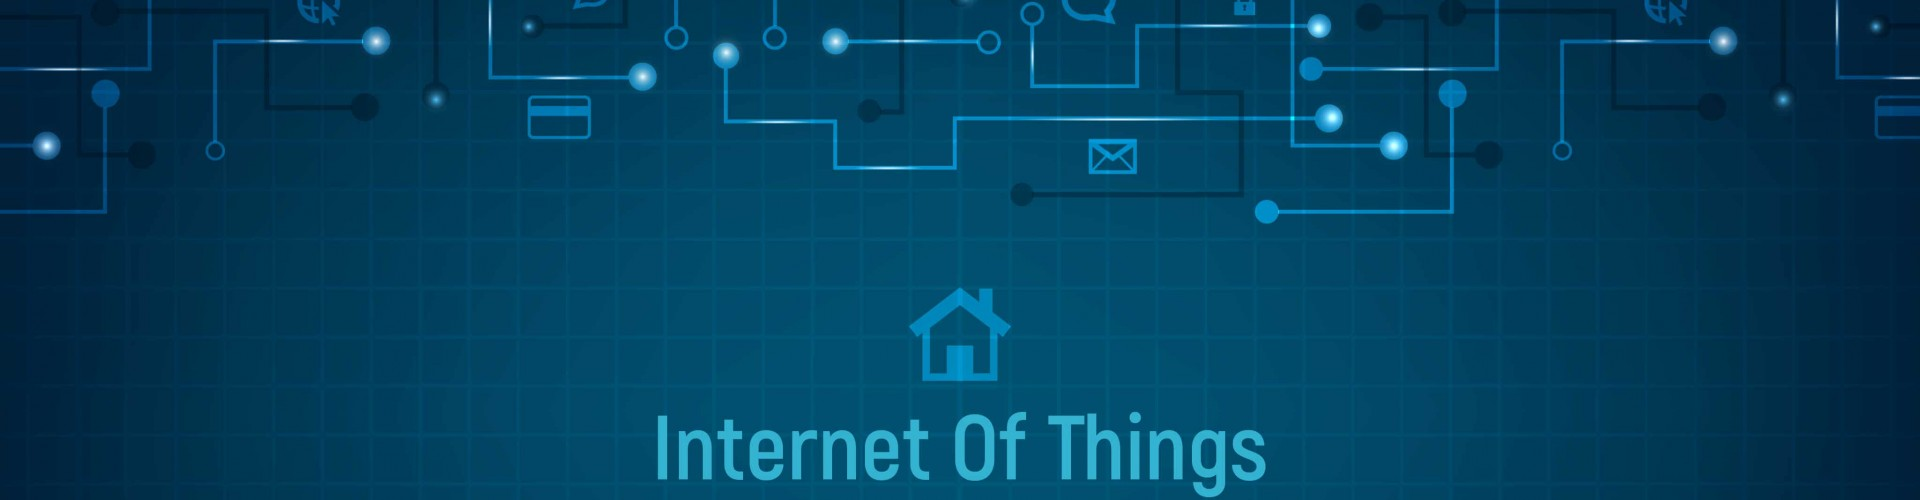 What is the Internet of Things and how it is already transforming our lives?